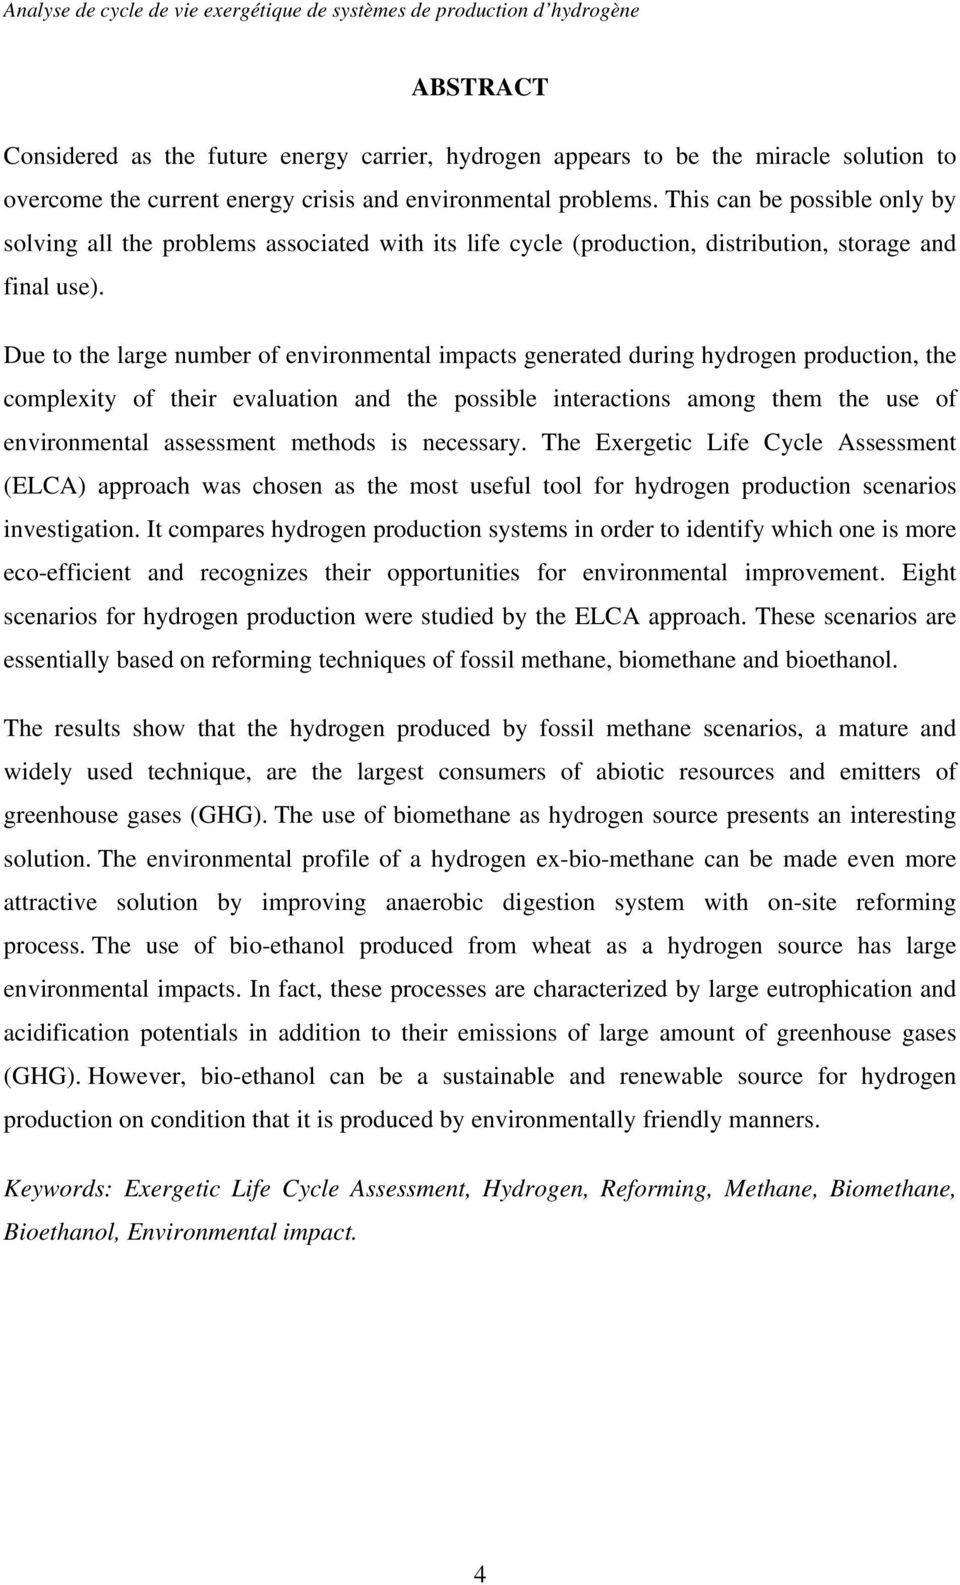 Due to the large number of environmental impacts generated during hydrogen production, the complexity of their evaluation and the possible interactions among them the use of environmental assessment